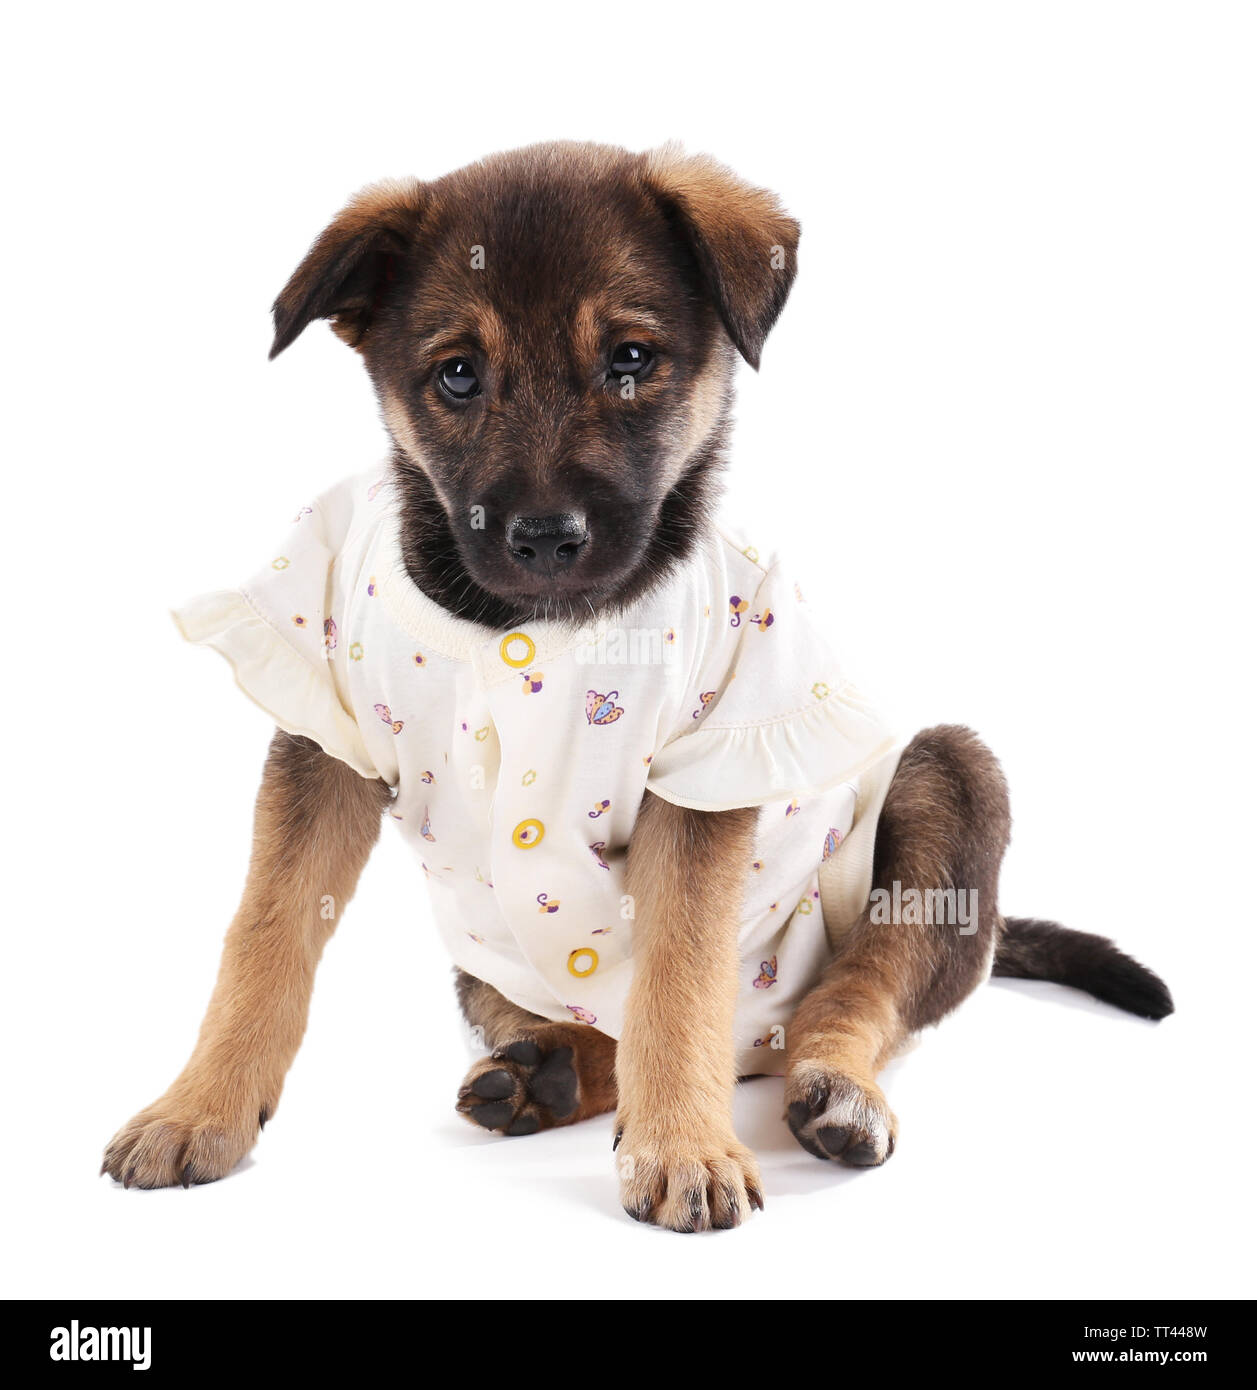 Puppy dressed in clothes for children isolated on white - Stock Image